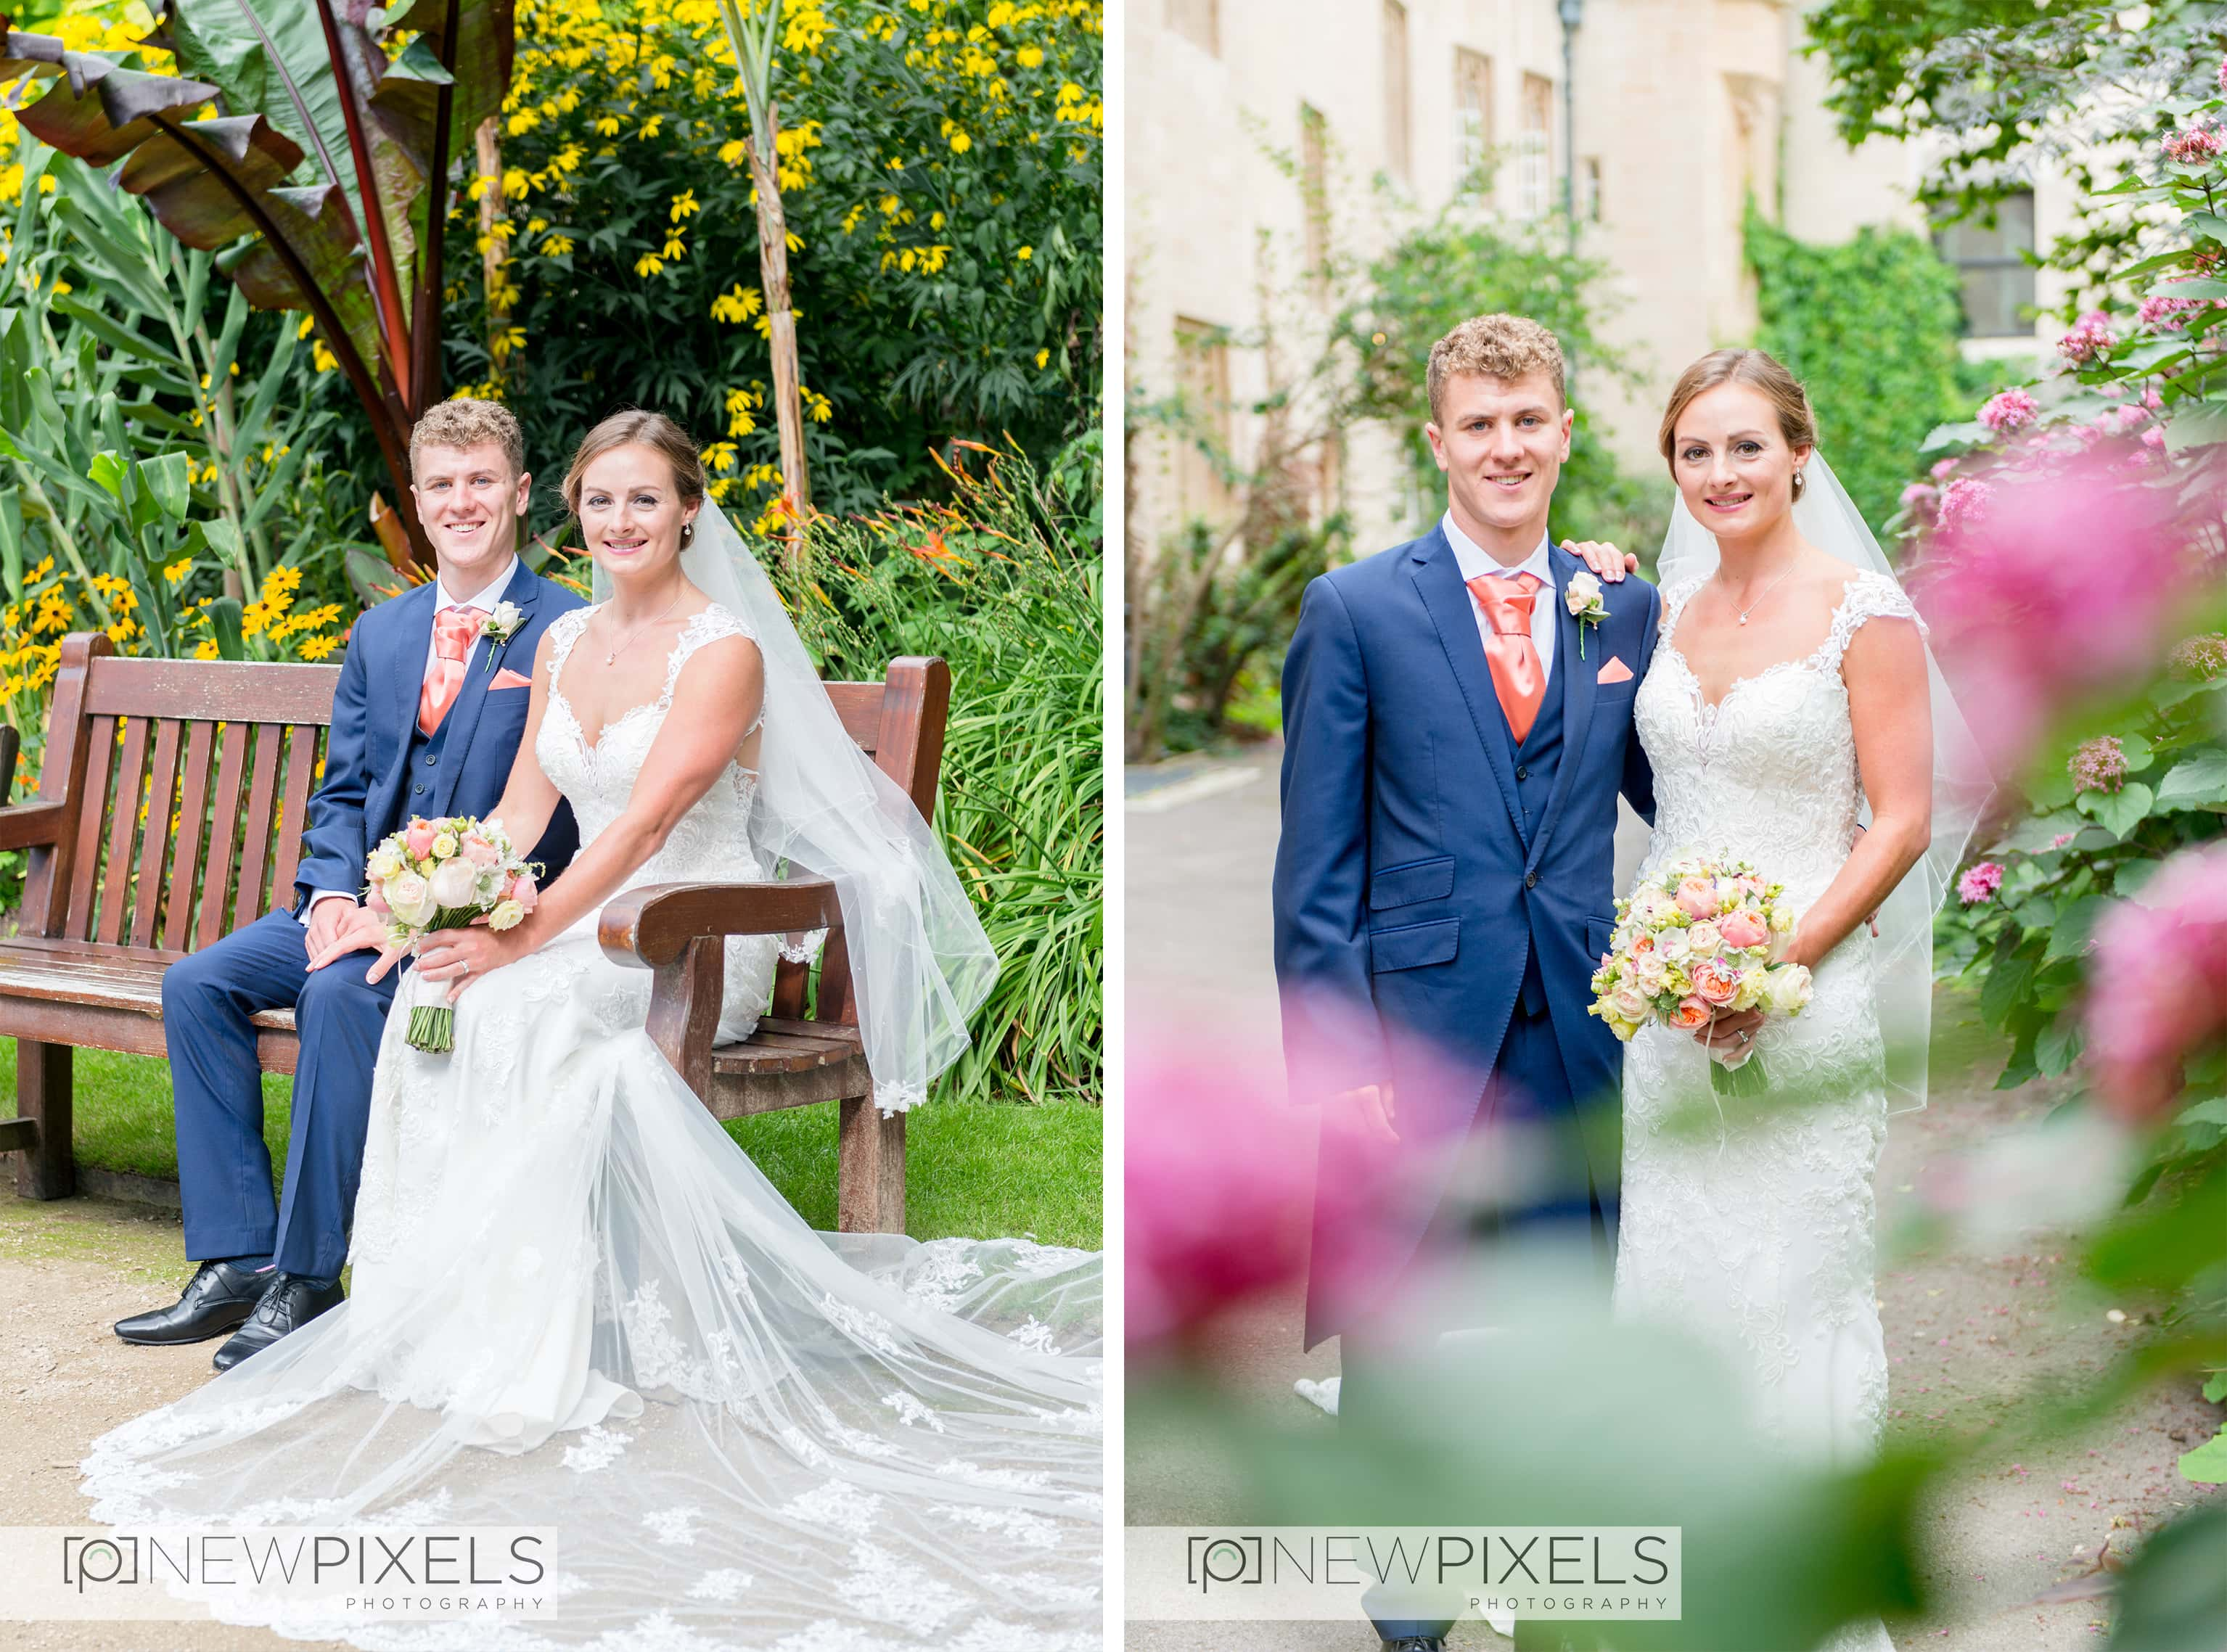 Oxford Wedding Photography5